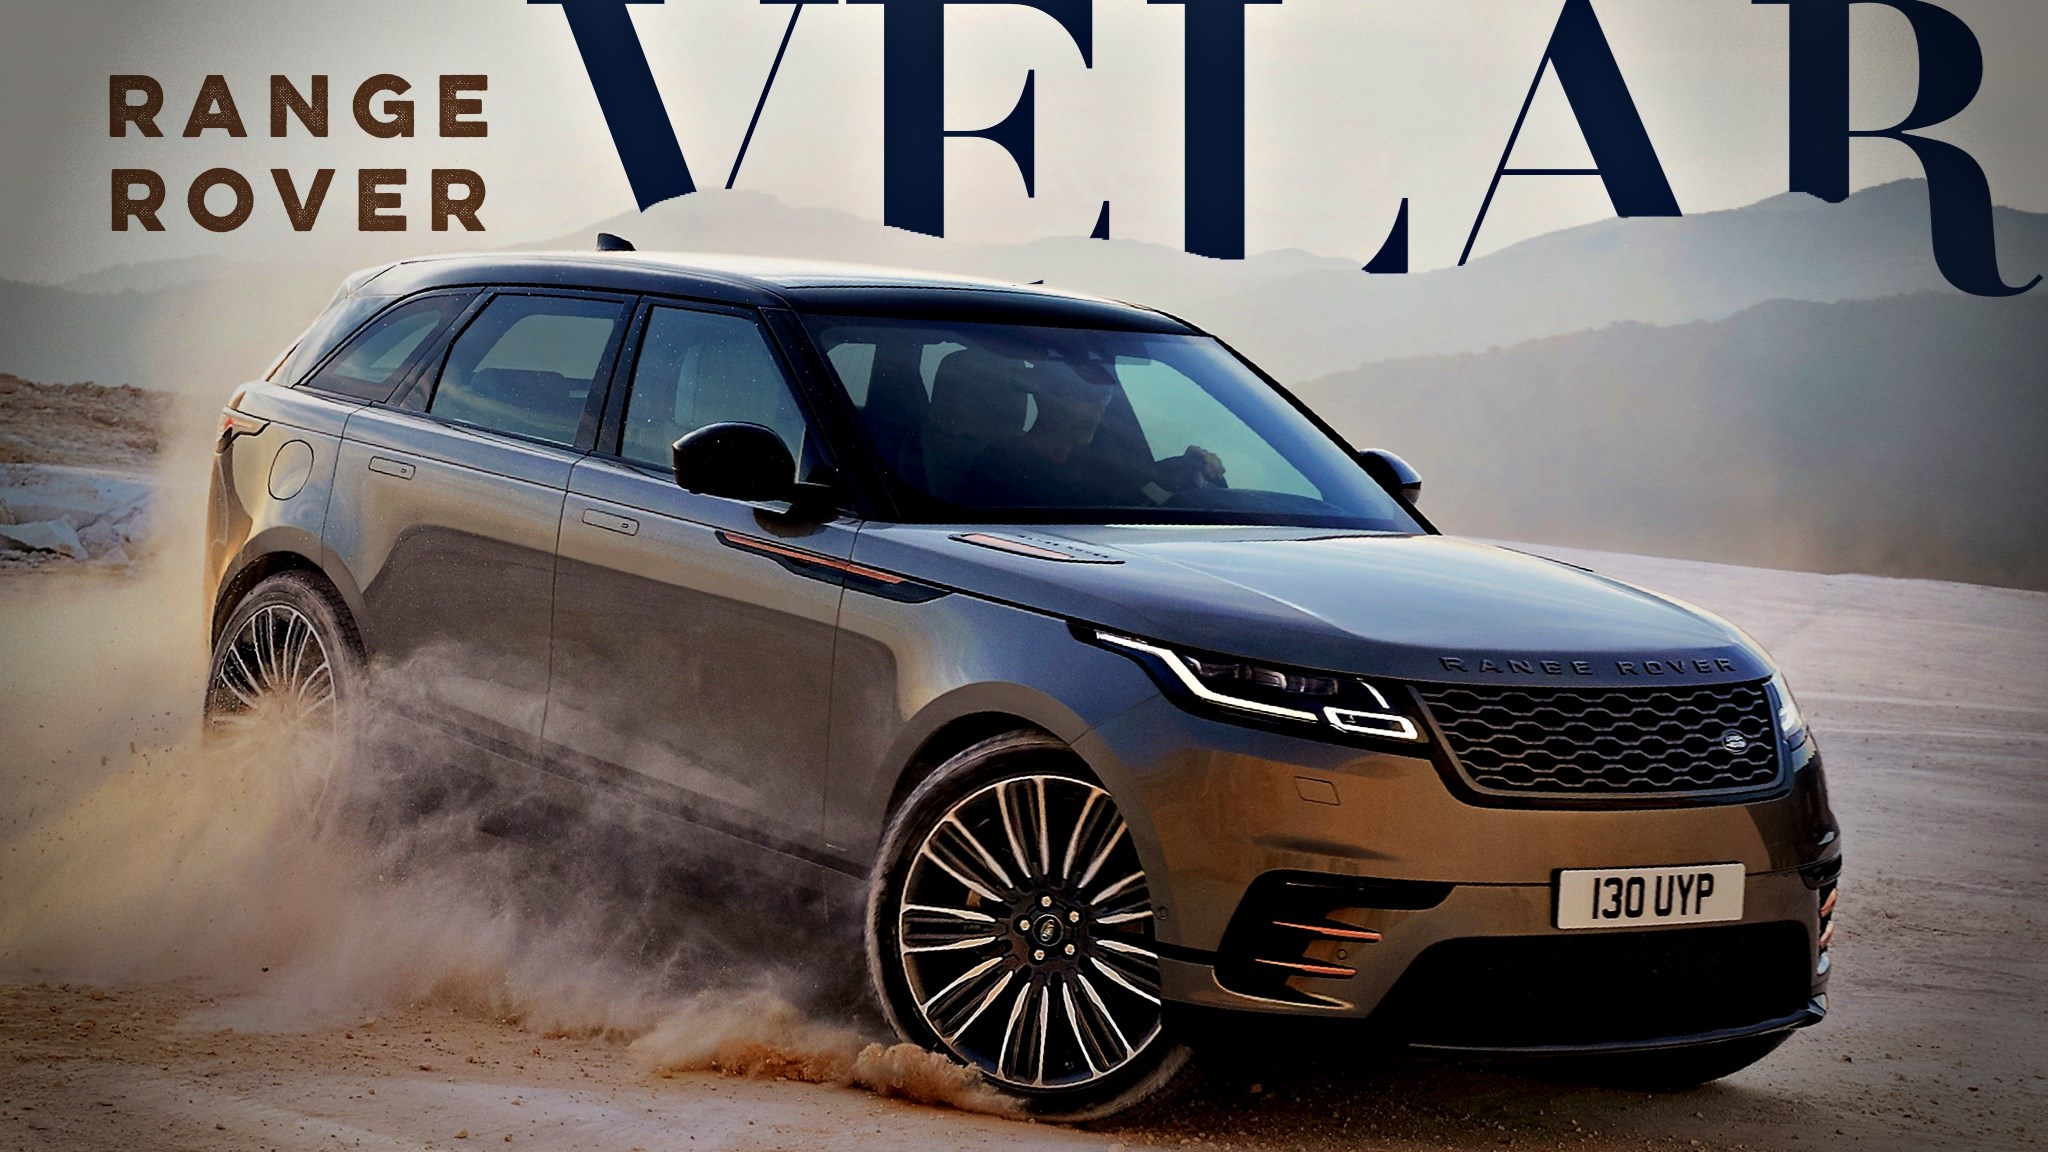 Range Rover Velar Premieres In London, In Oz Mid-2017